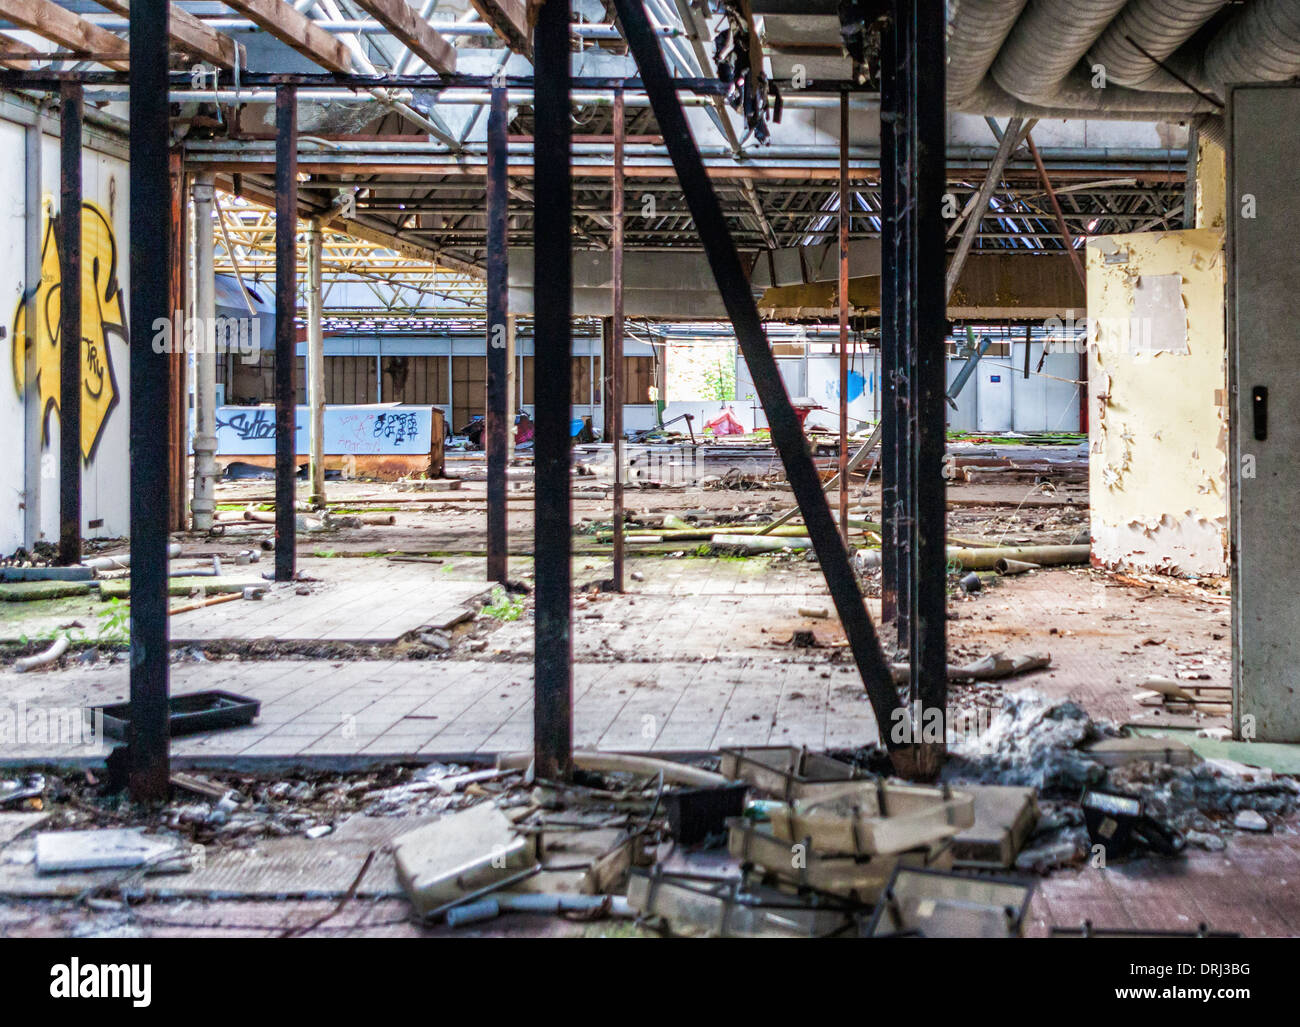 Buildings are derelict, closed and disused in the abandoned Spreepark amusement park, Plånterwald, Treptow-Kopernick, Berlin - Stock Image